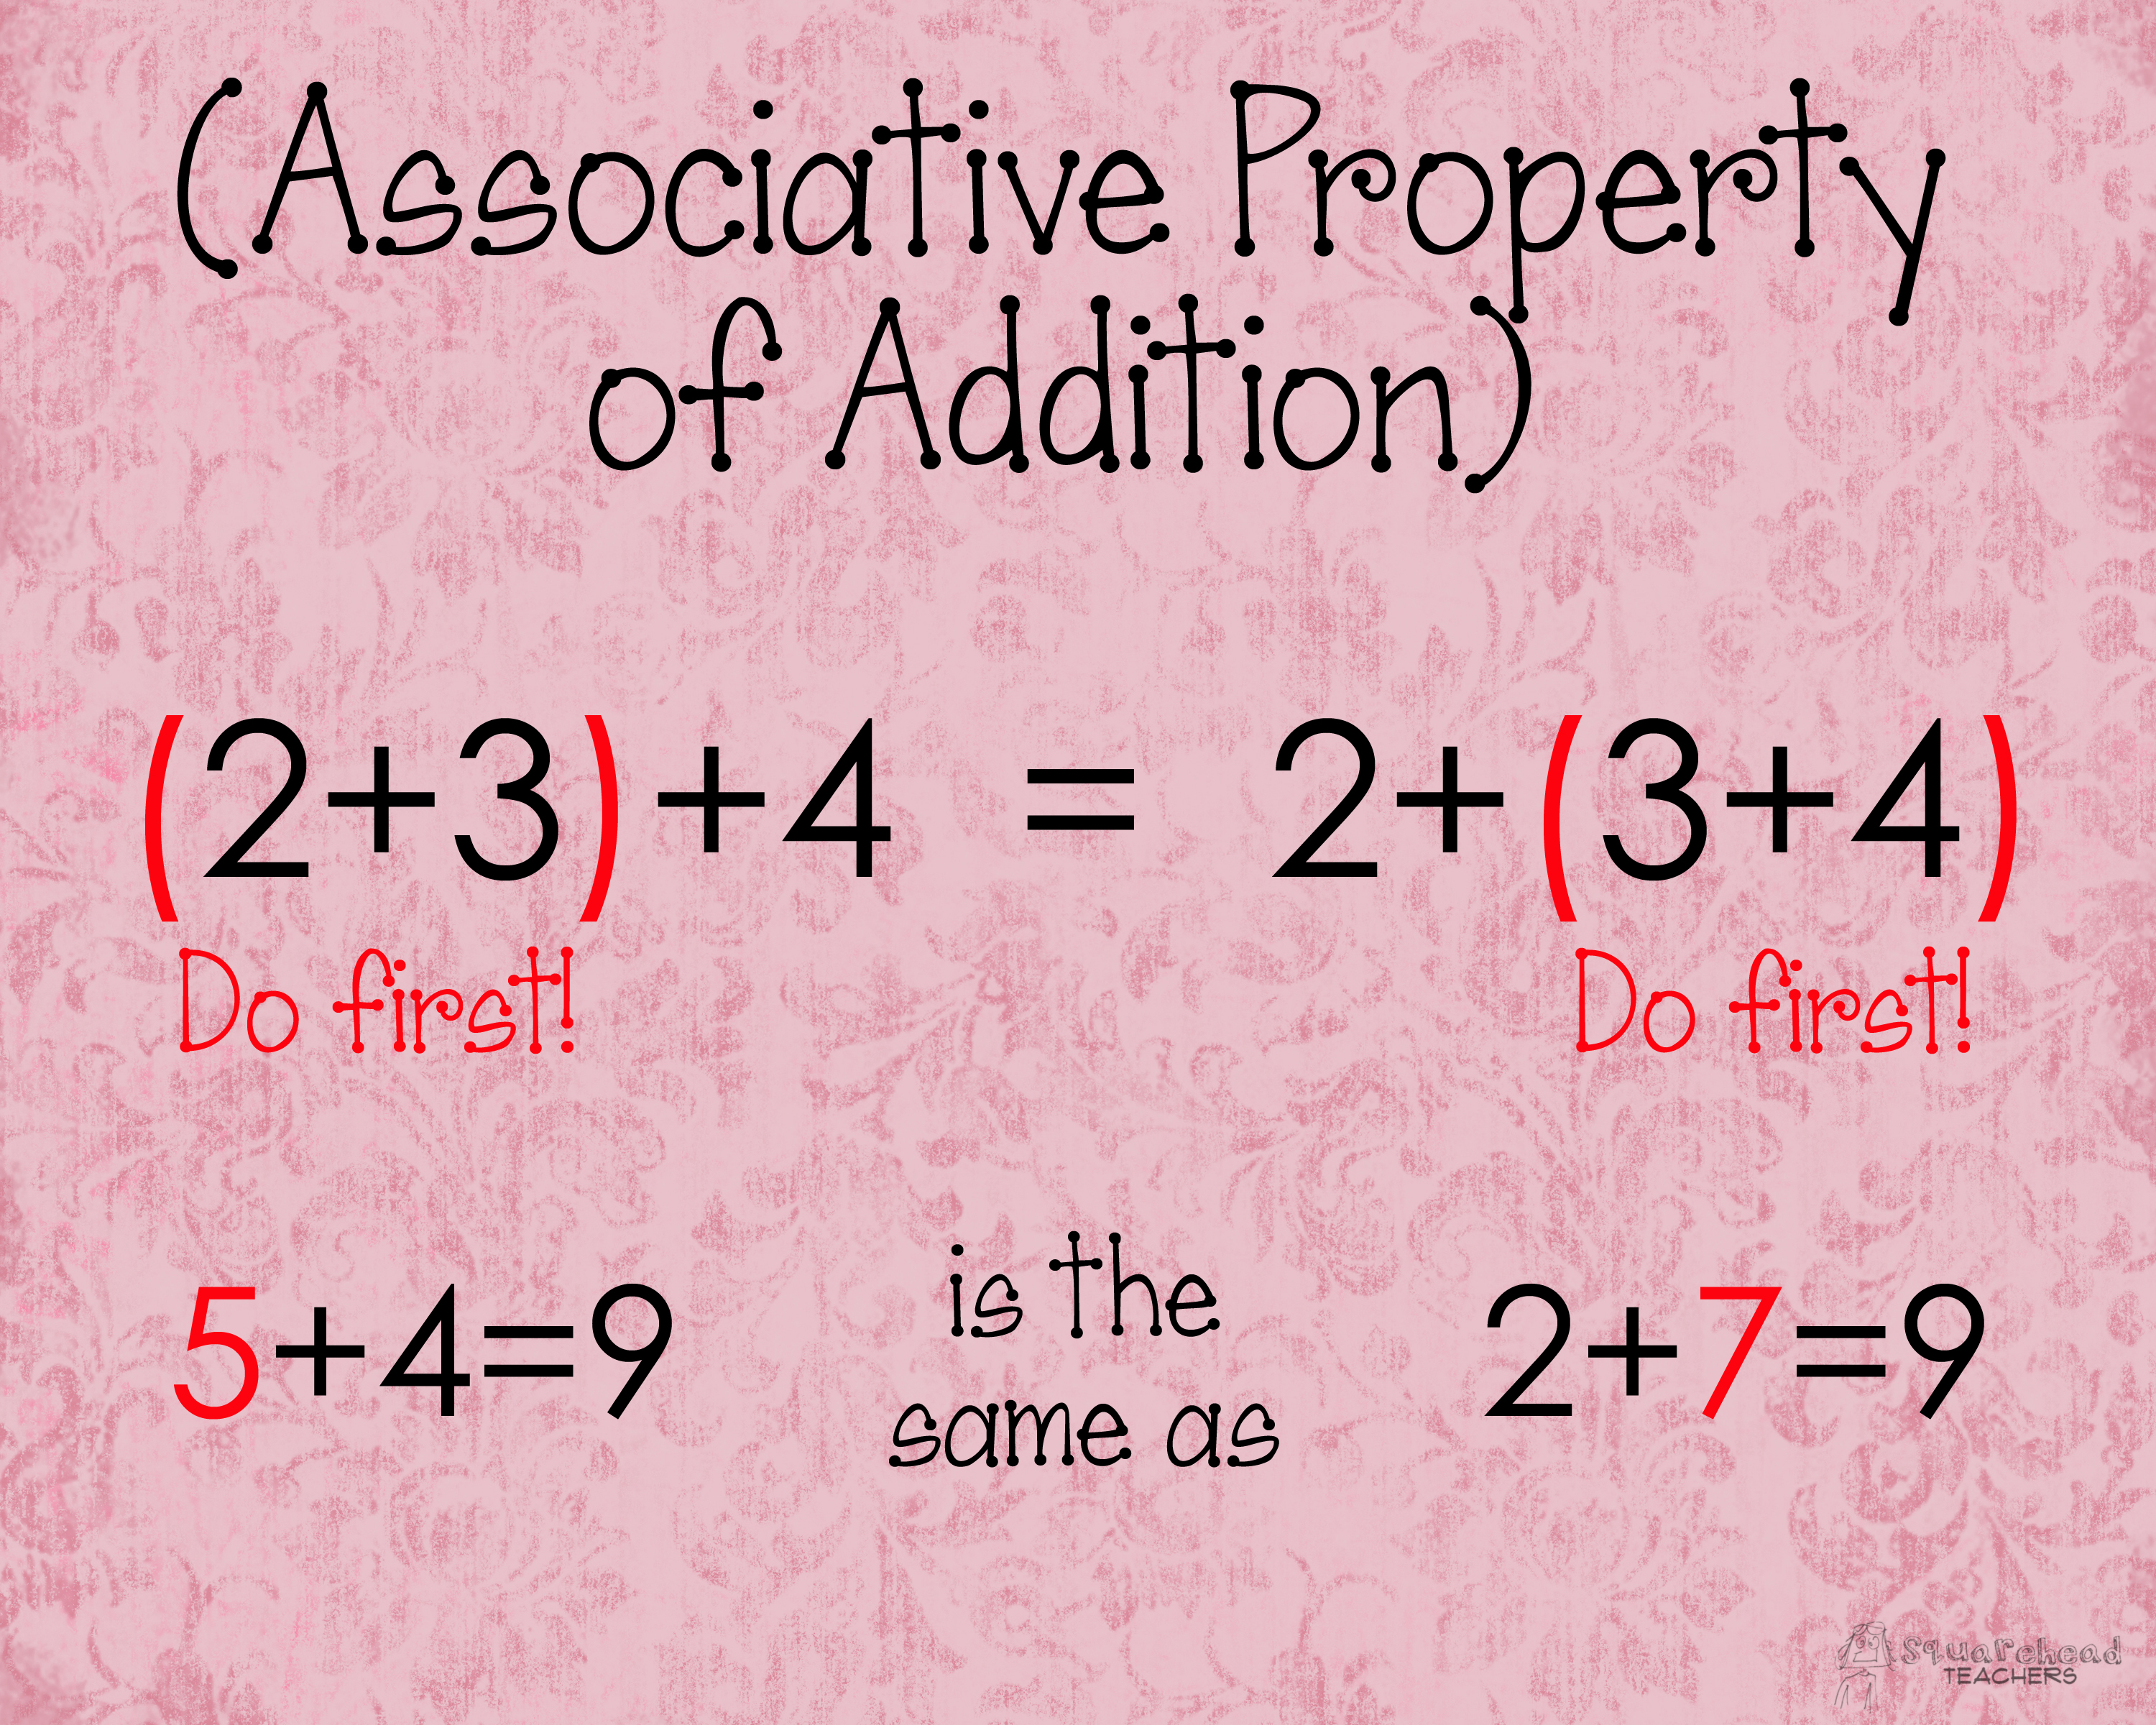 Associative Property Of Addition Poster